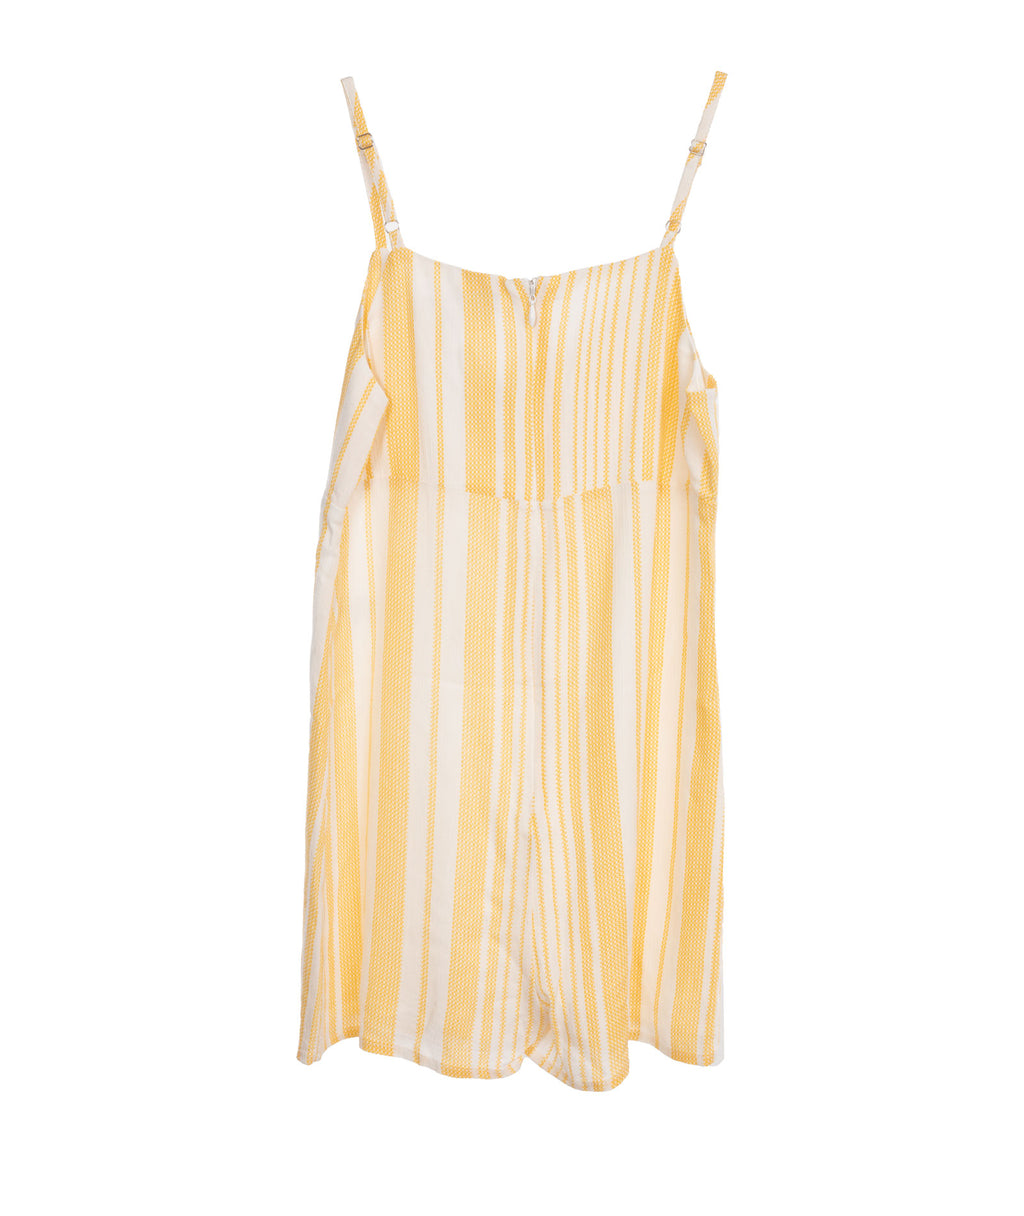 For All Seasons Girls Yellow Striped Romper